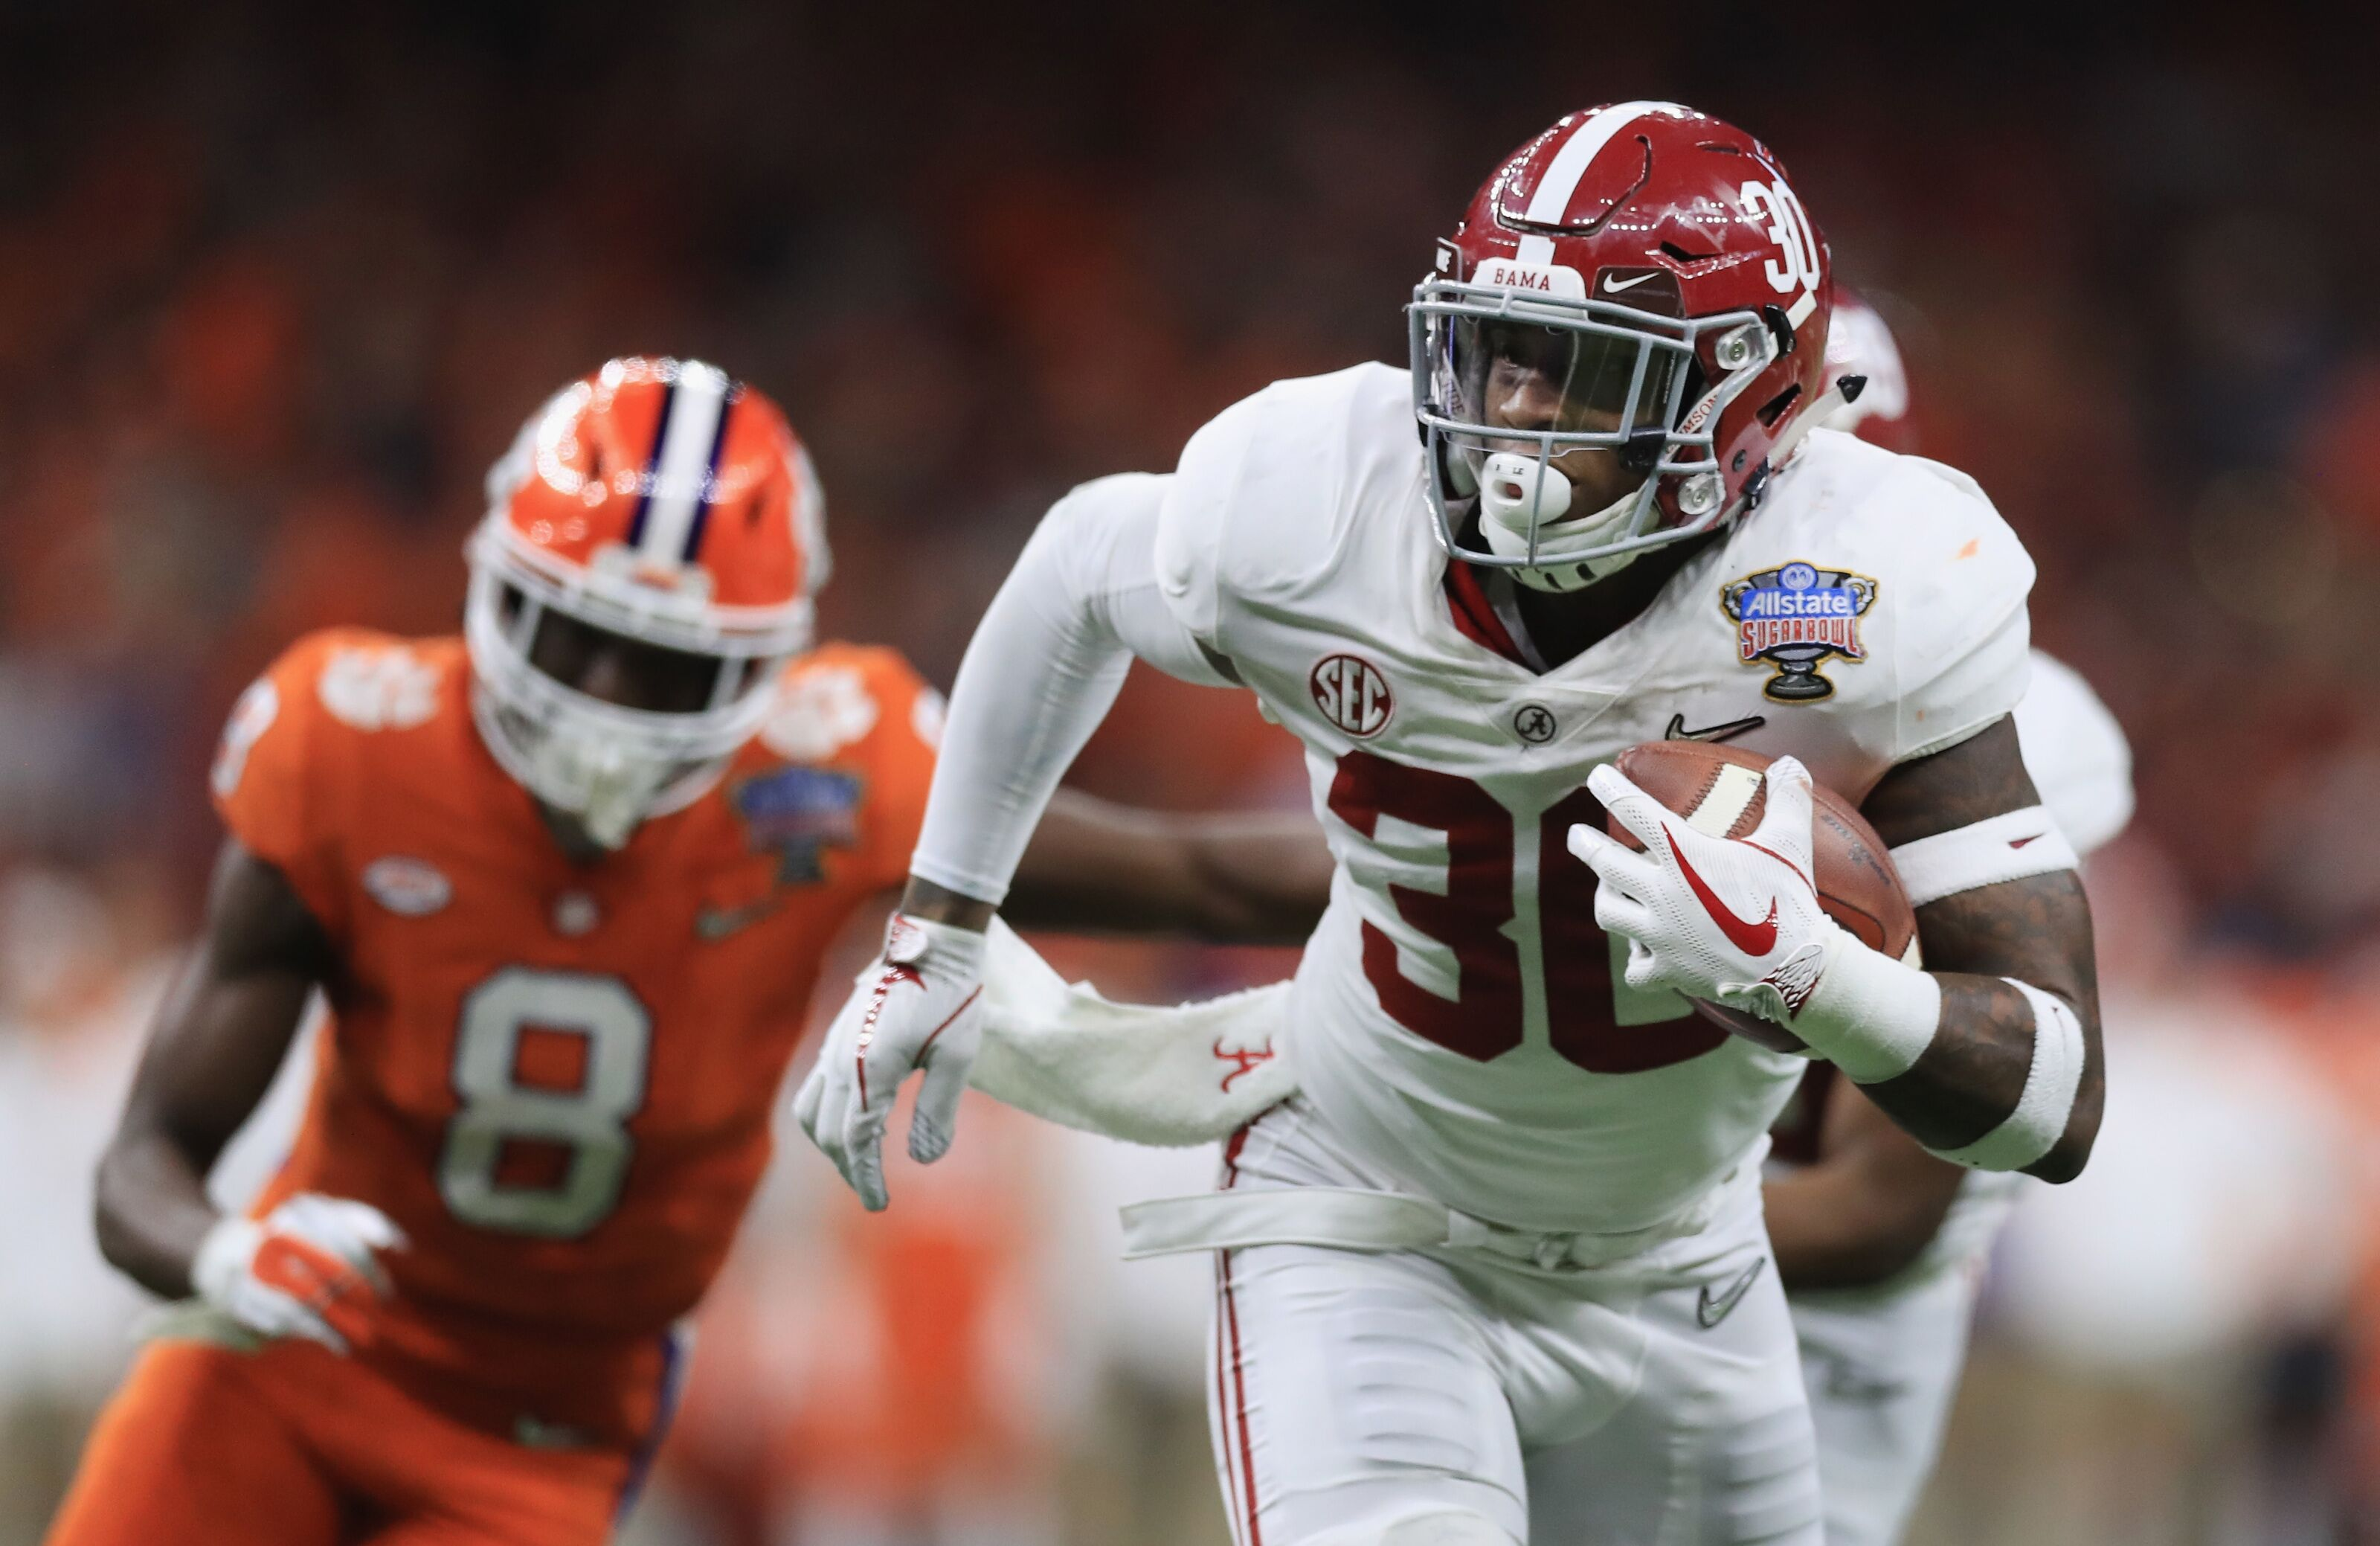 2019 NFL Scouting Combine: Day 2 draft prospects 49ers should watch